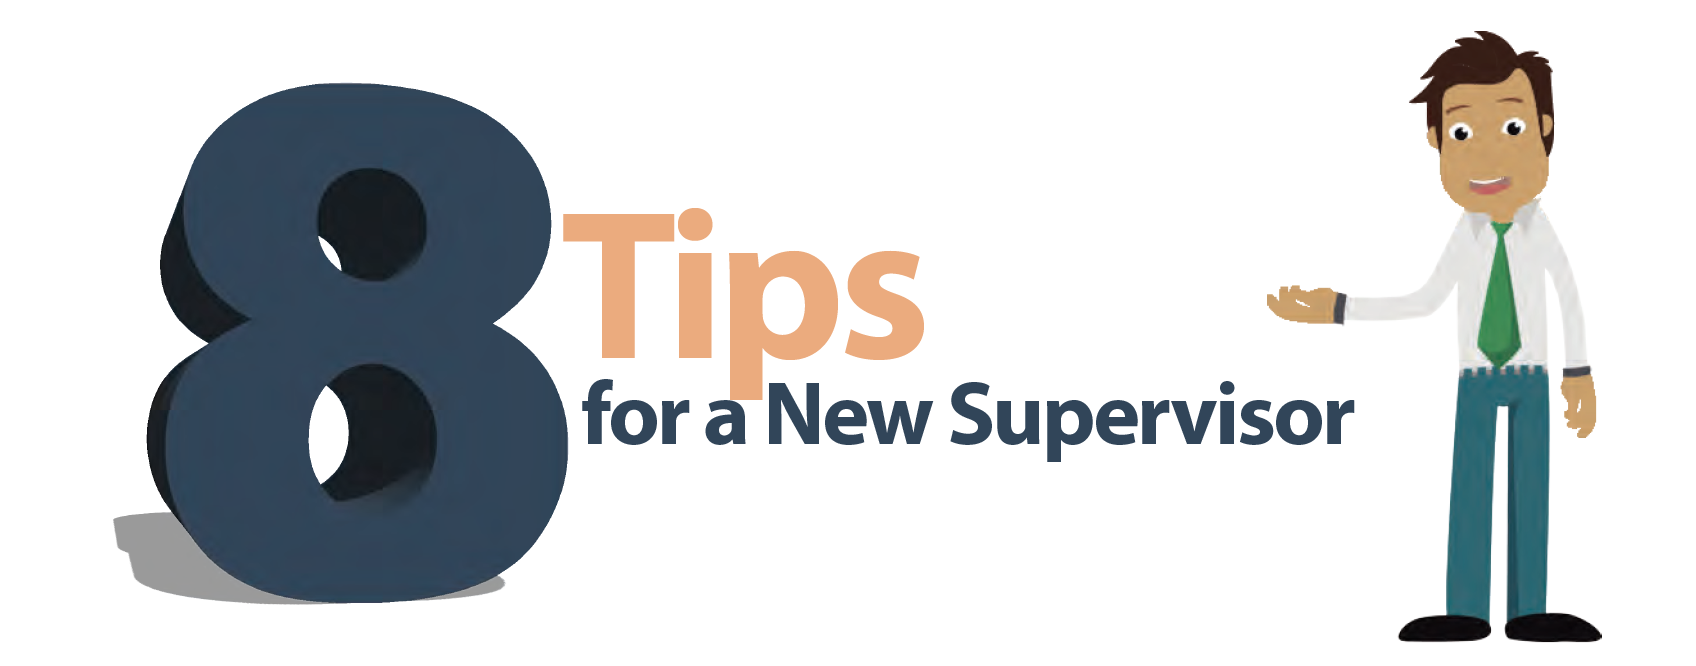 animated guy with 8 tips for a new supervisor